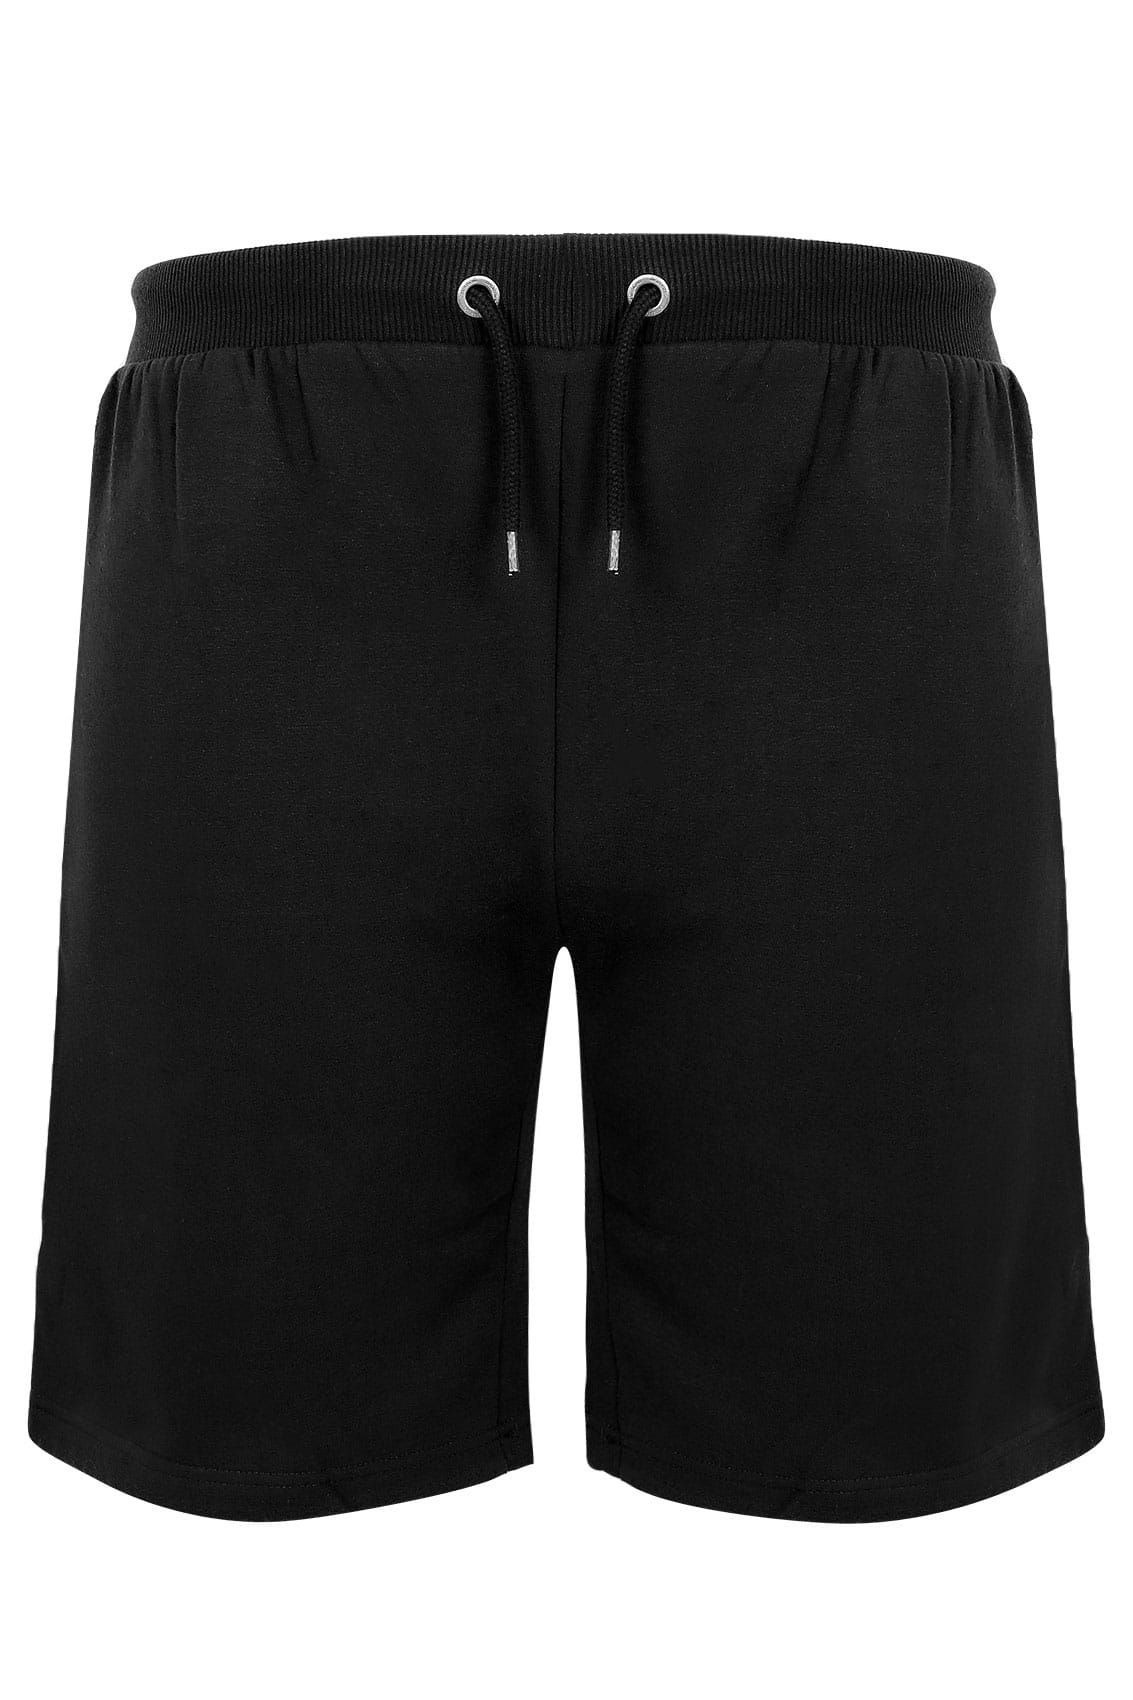 Men's Sweat Shorts